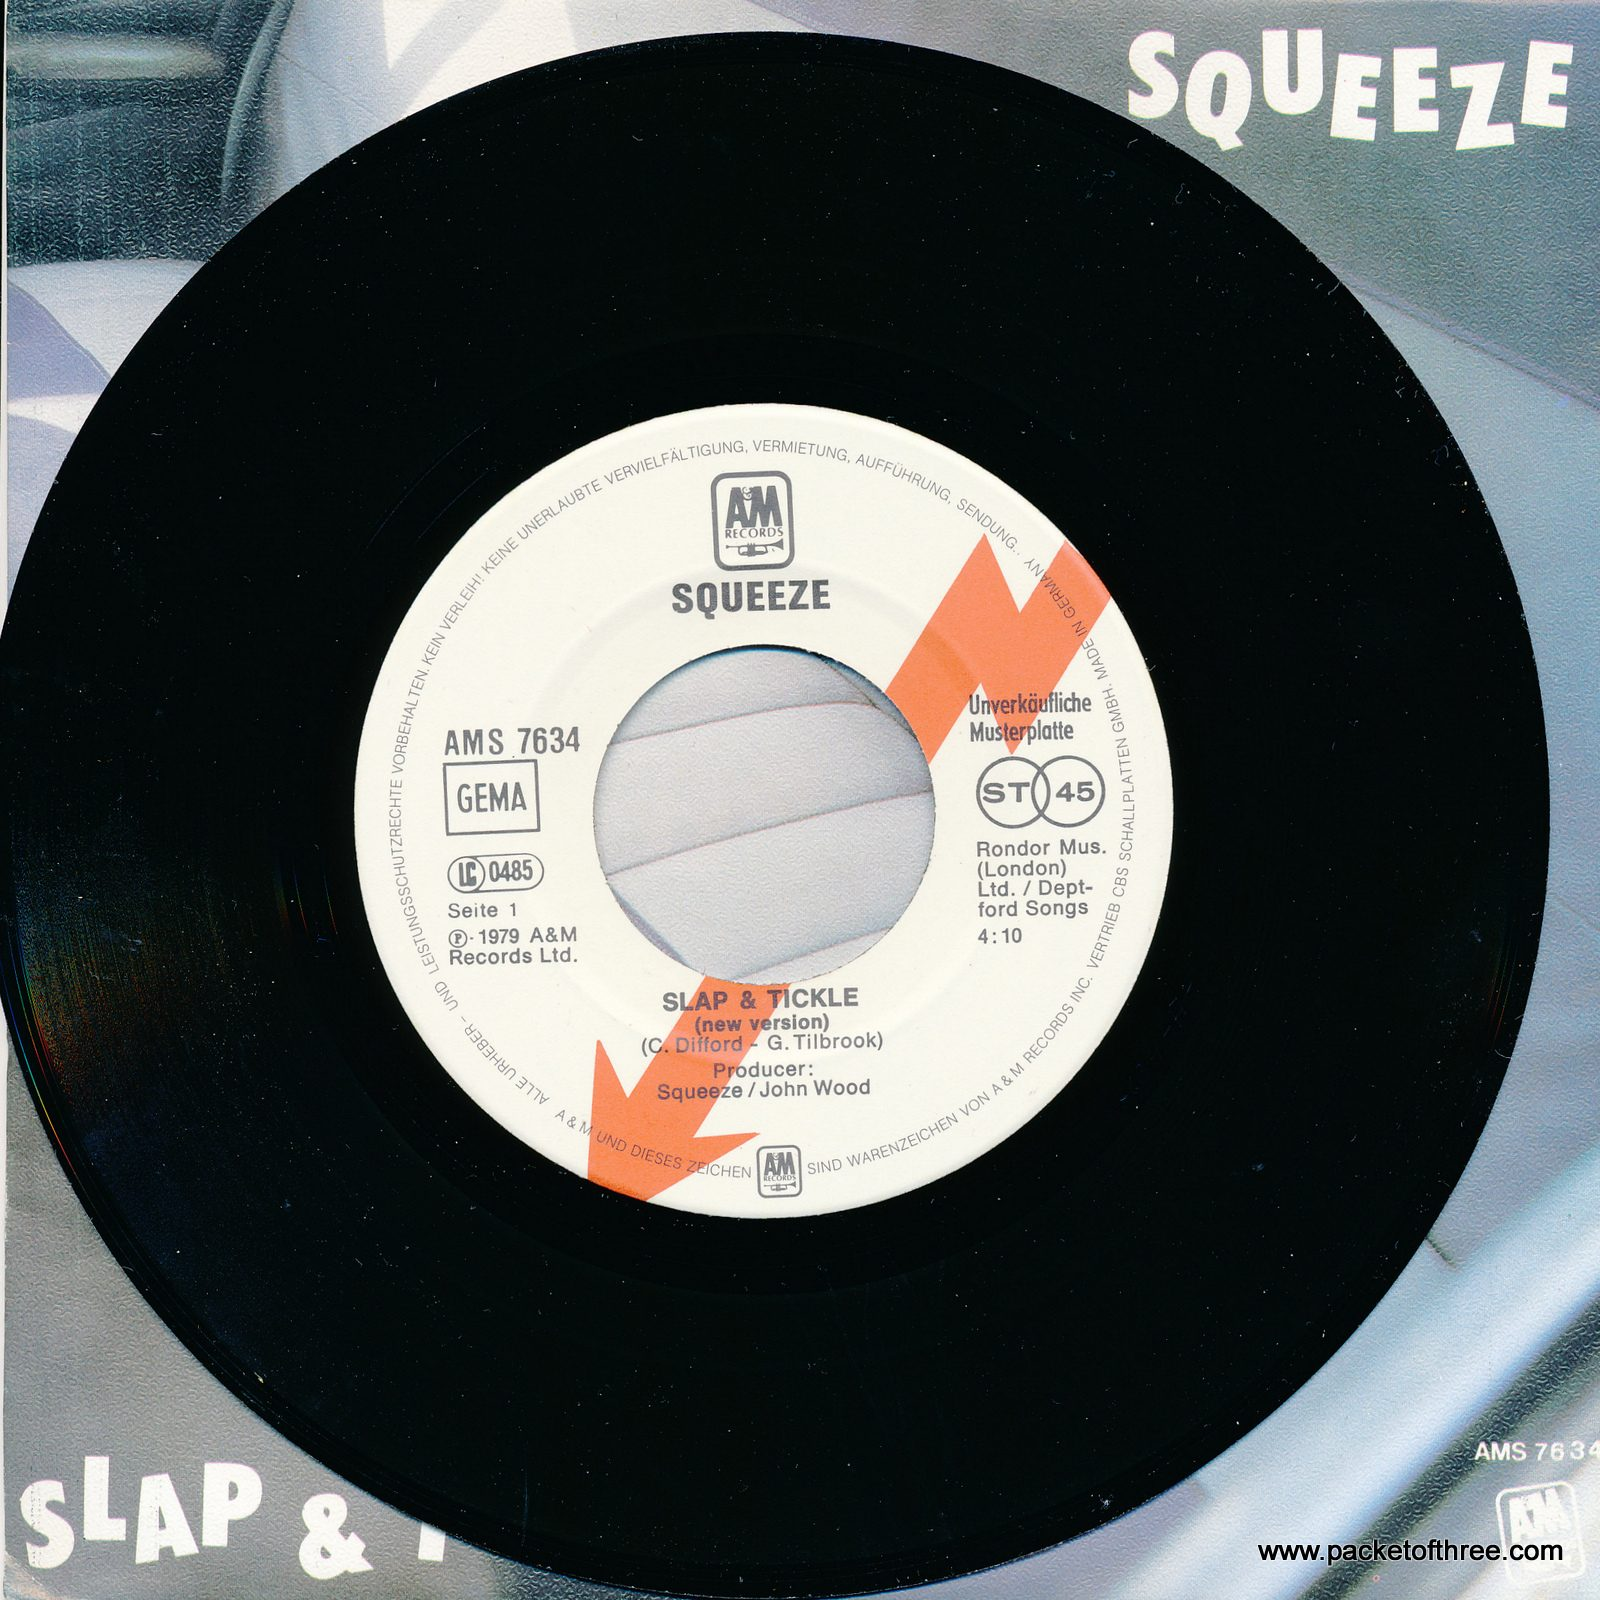 """AMS 7634 Germany 7"""" picture sleeve promo"""